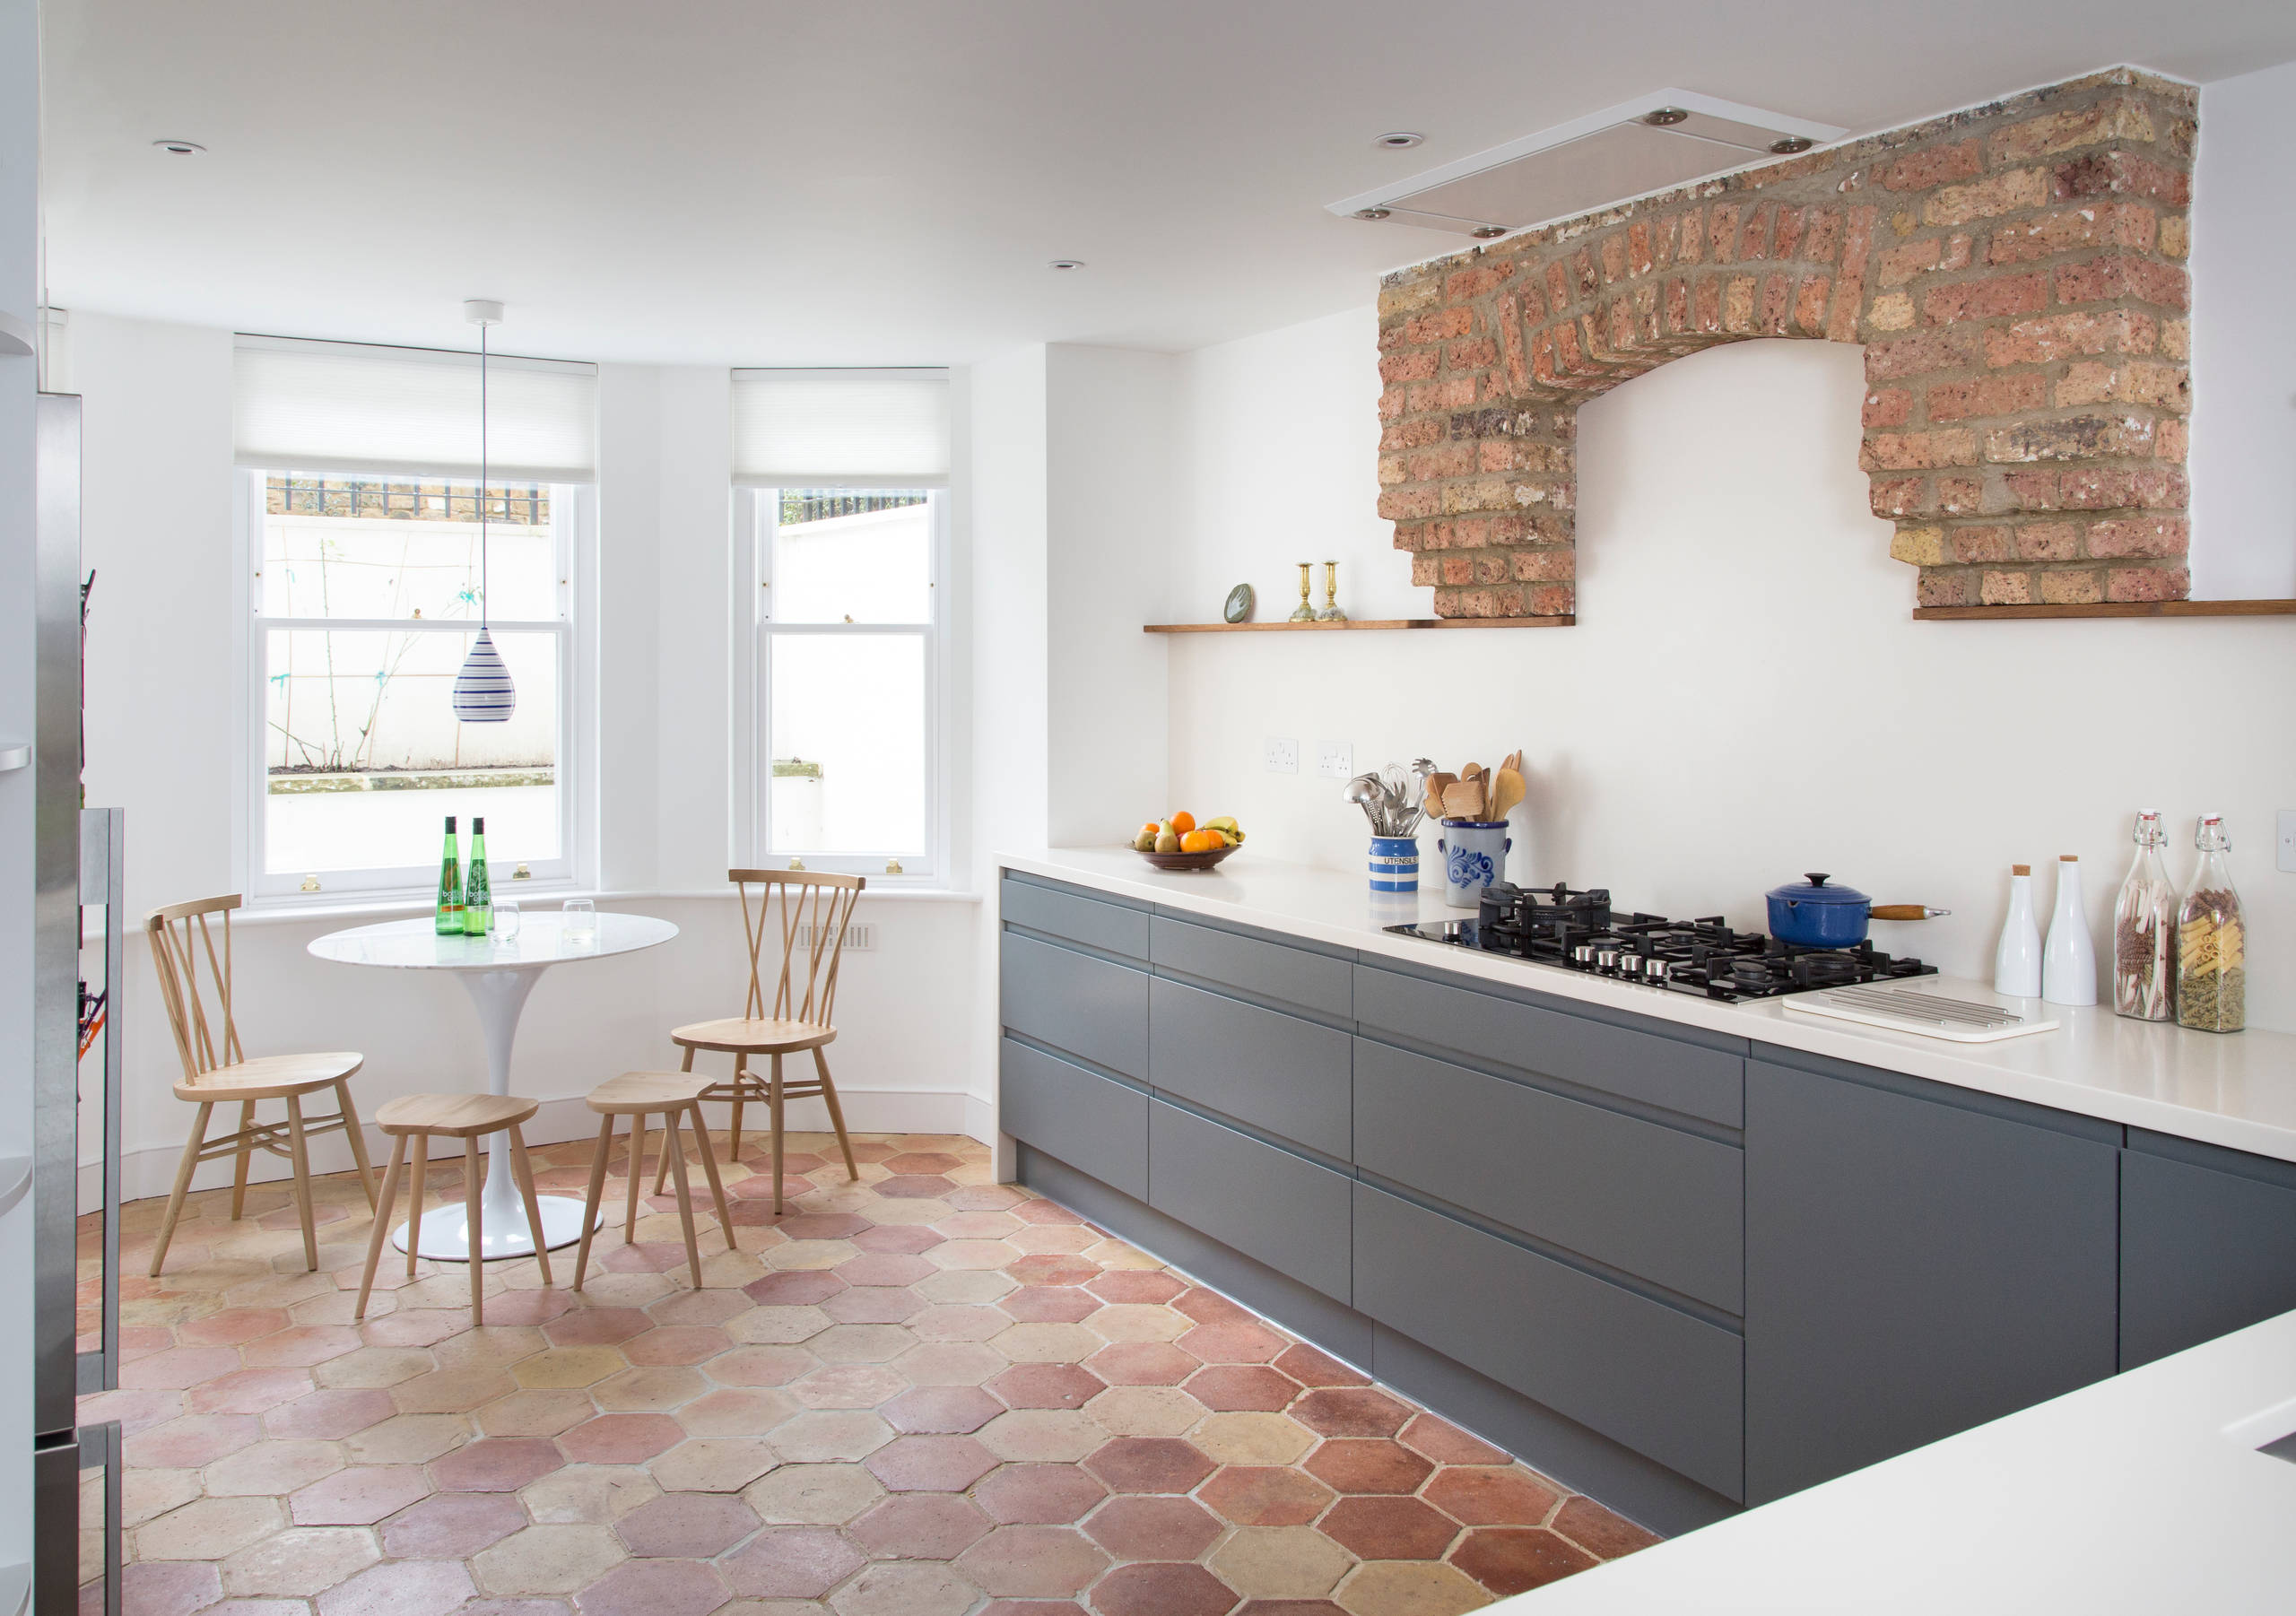 75 Beautiful Terra Cotta Tile Kitchen Pictures Ideas January 2021 Houzz